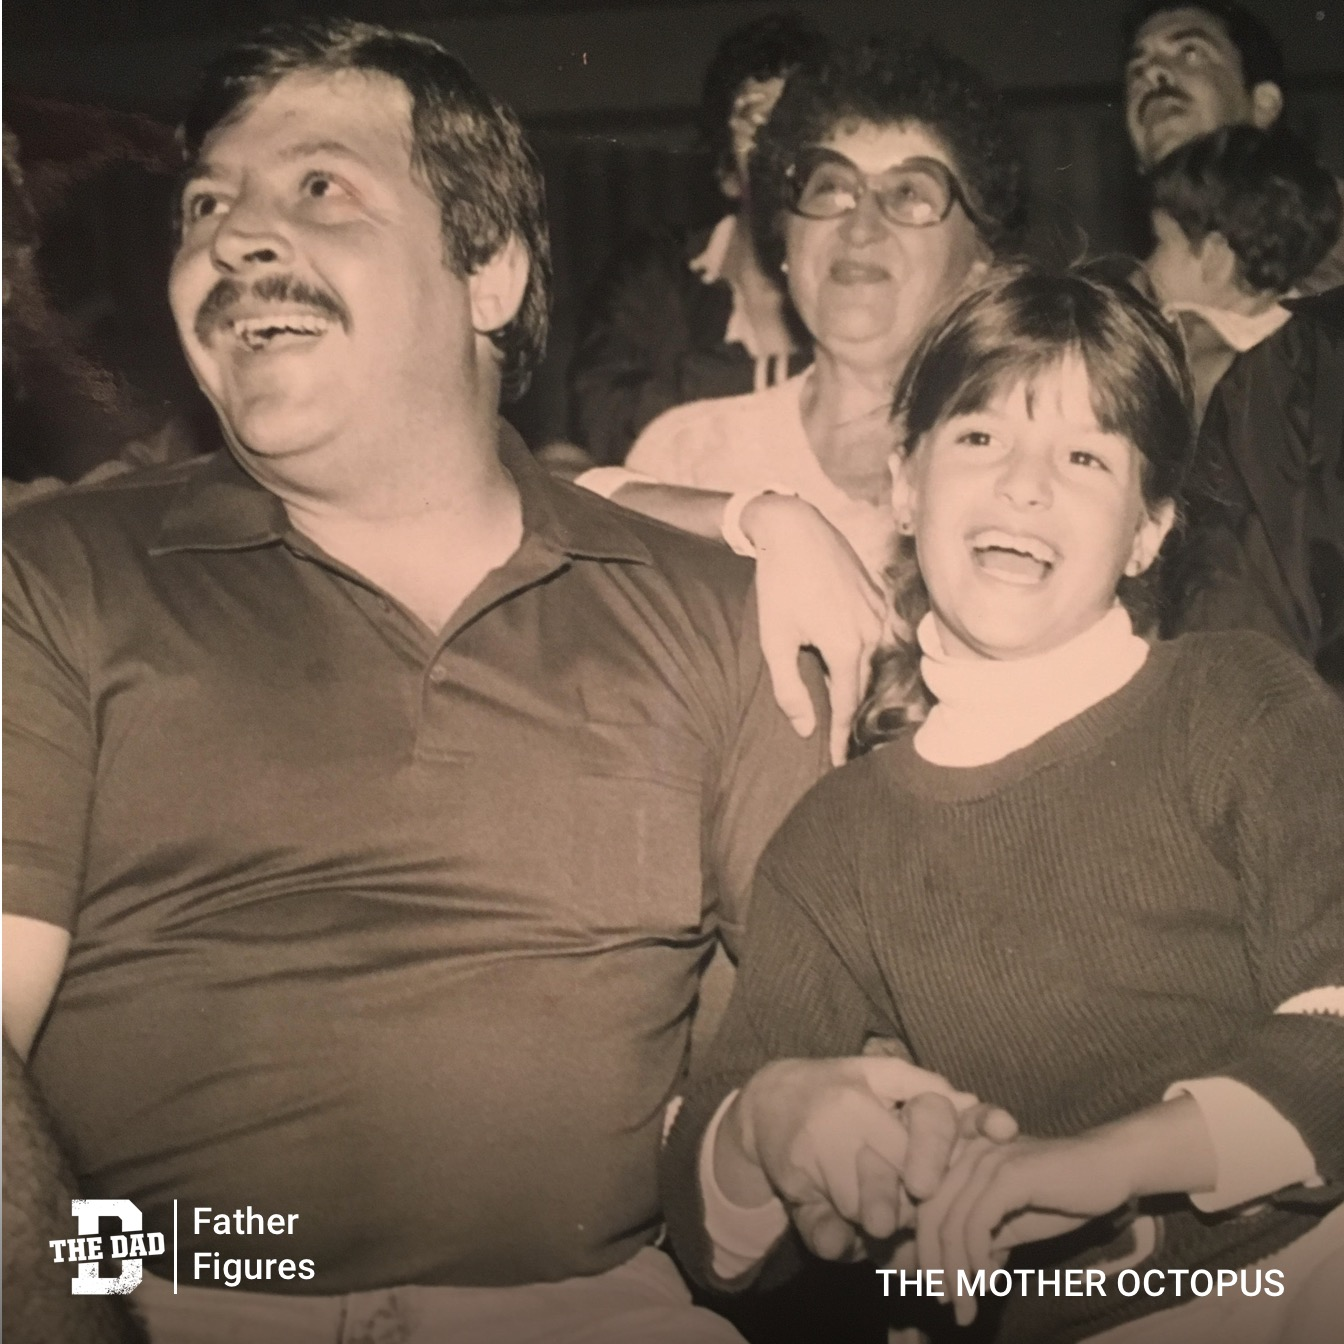 Father Figures: How We Stay Funny